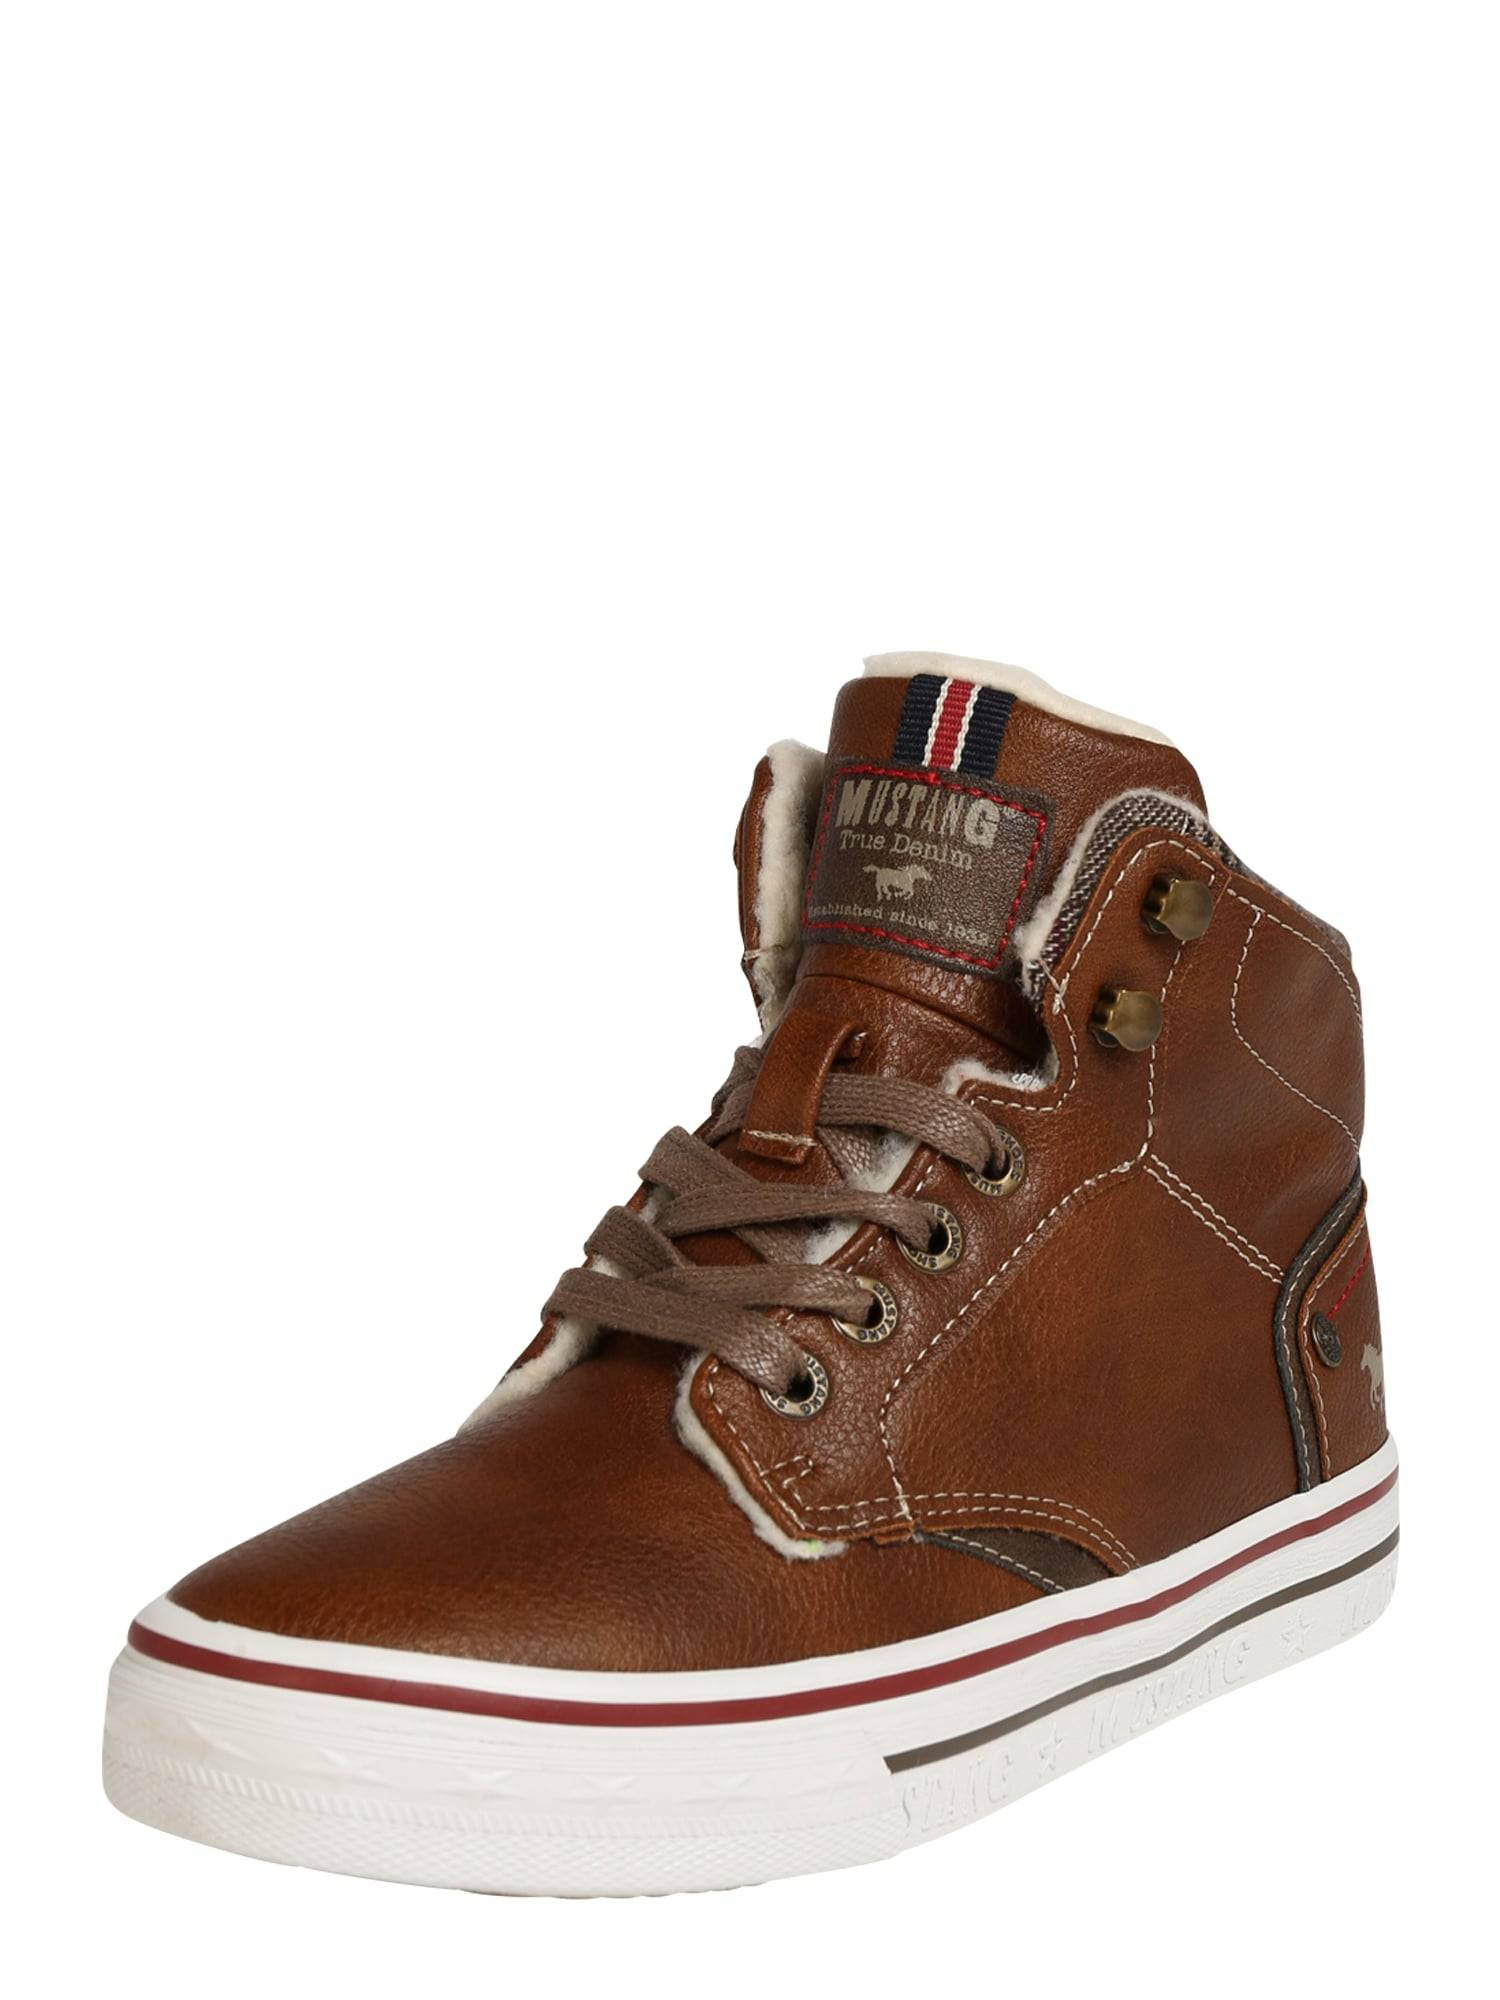 MUSTANG Baskets  - Marron - Taille: 31 - boy